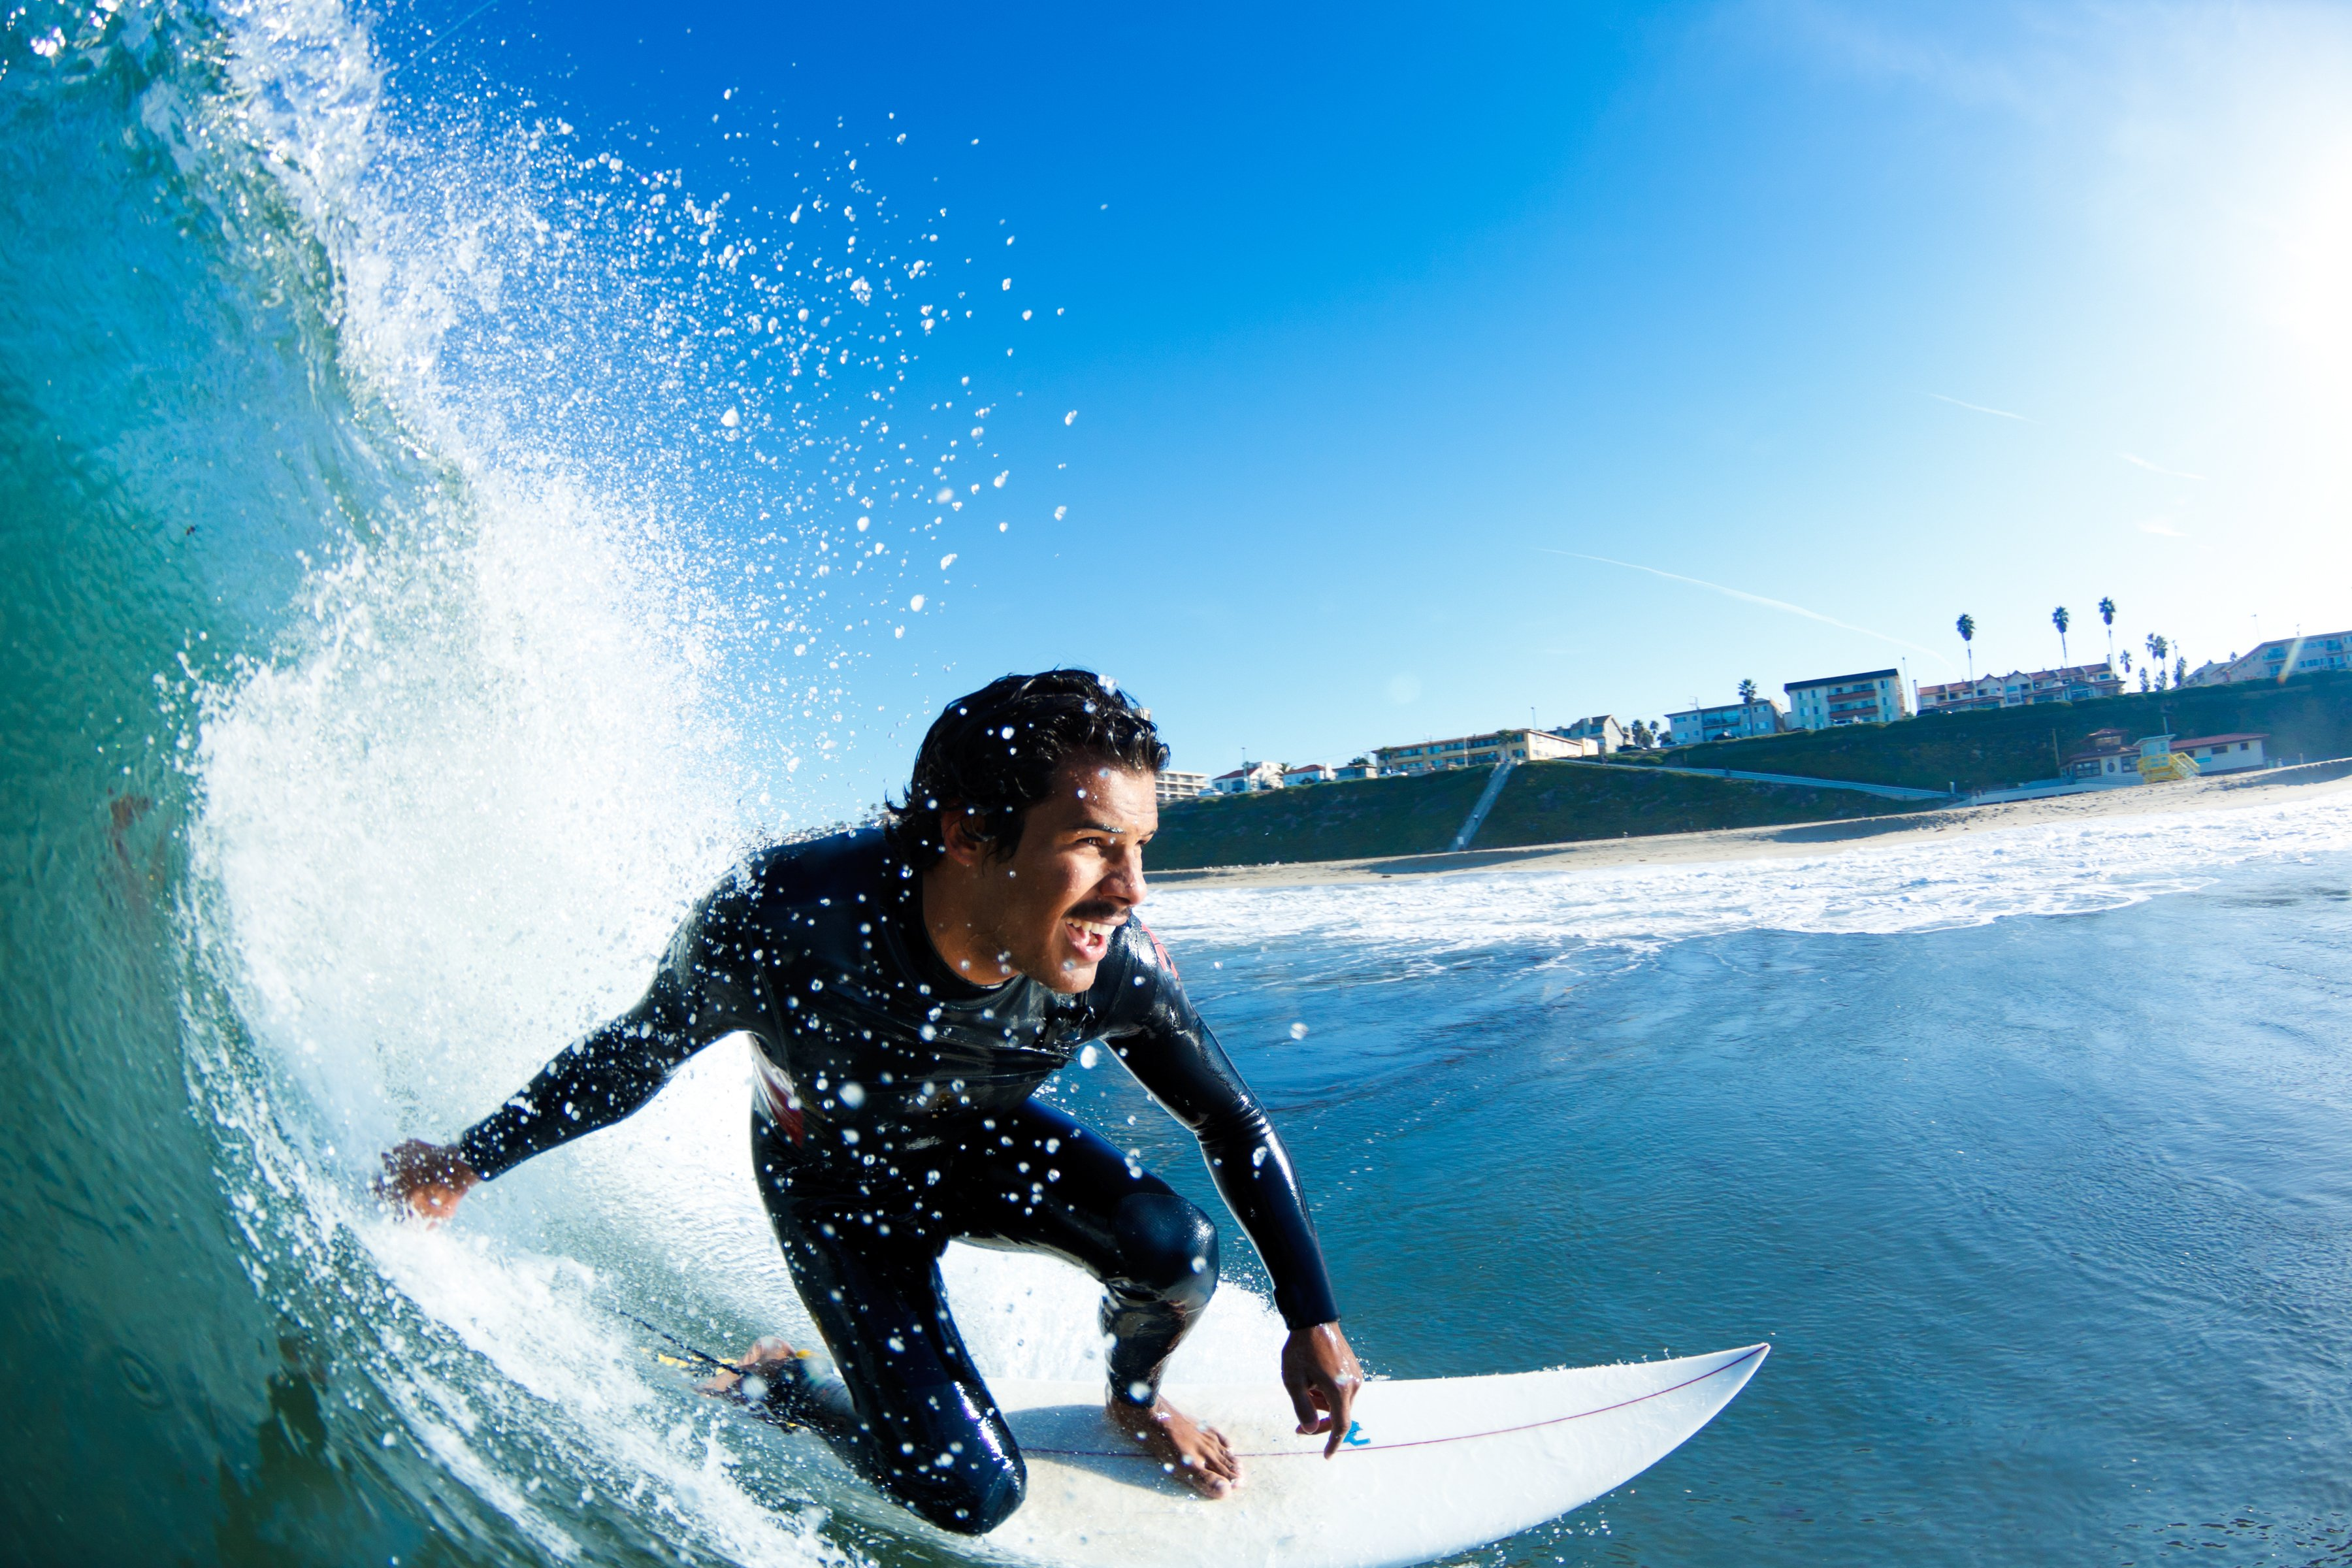 Extreme Surfing Wallpaper: Surfing Surf Ocean Sea Waves Extreme Surfer (38) Wallpaper